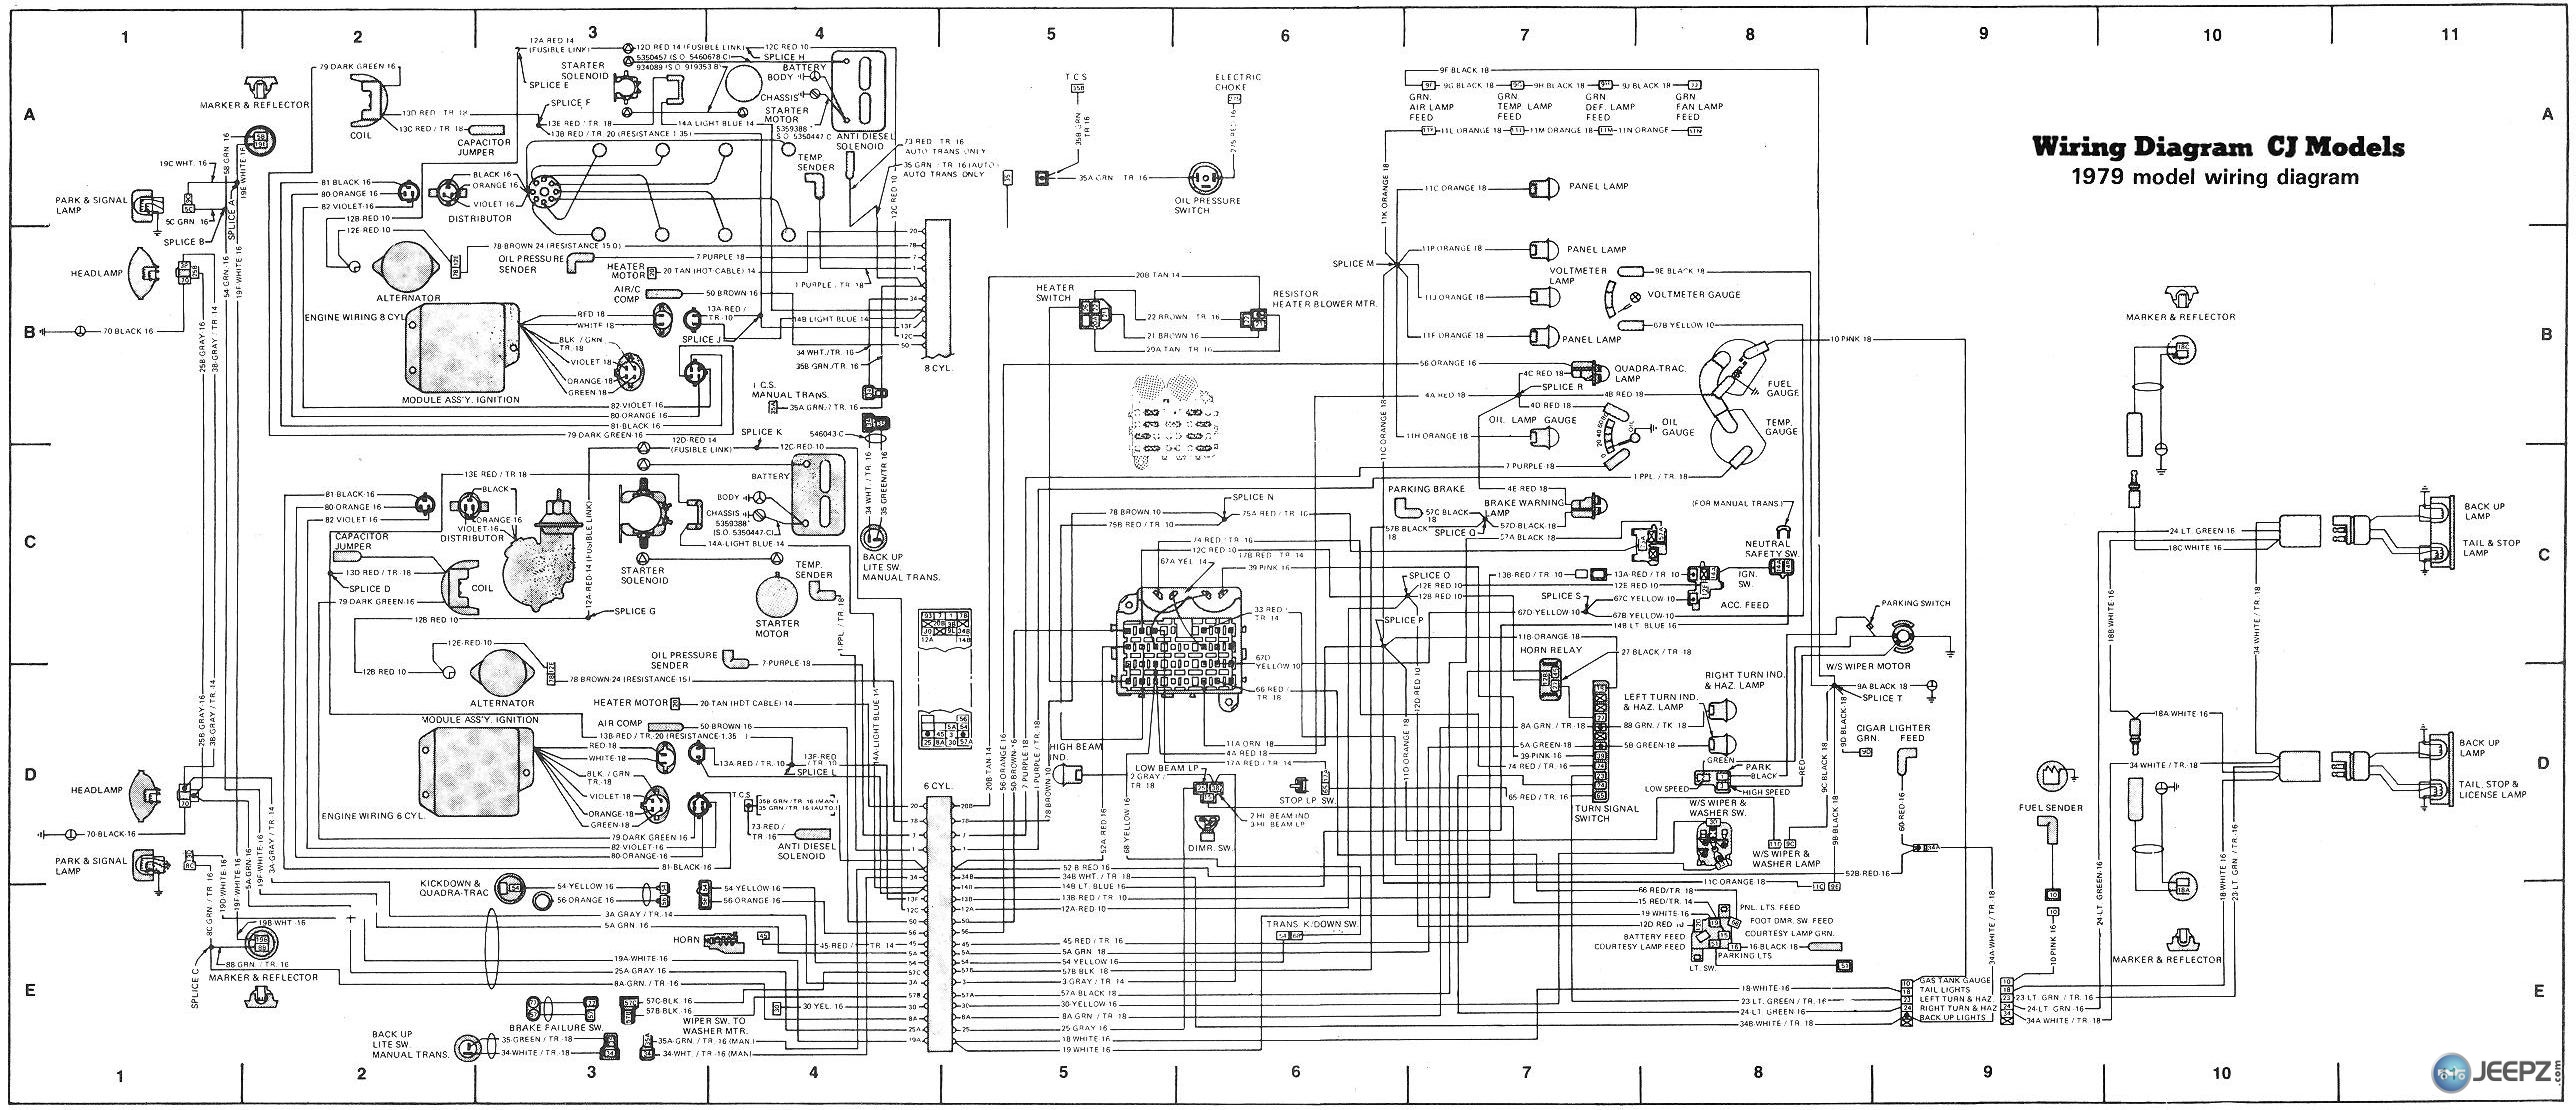 jeep cj fuse box replacement wiring diagramcj7 replacement fuse box wiring diagramyj fuse diagram wiring diagramcj7 replacement fuse box wiring diagram1978 jeep